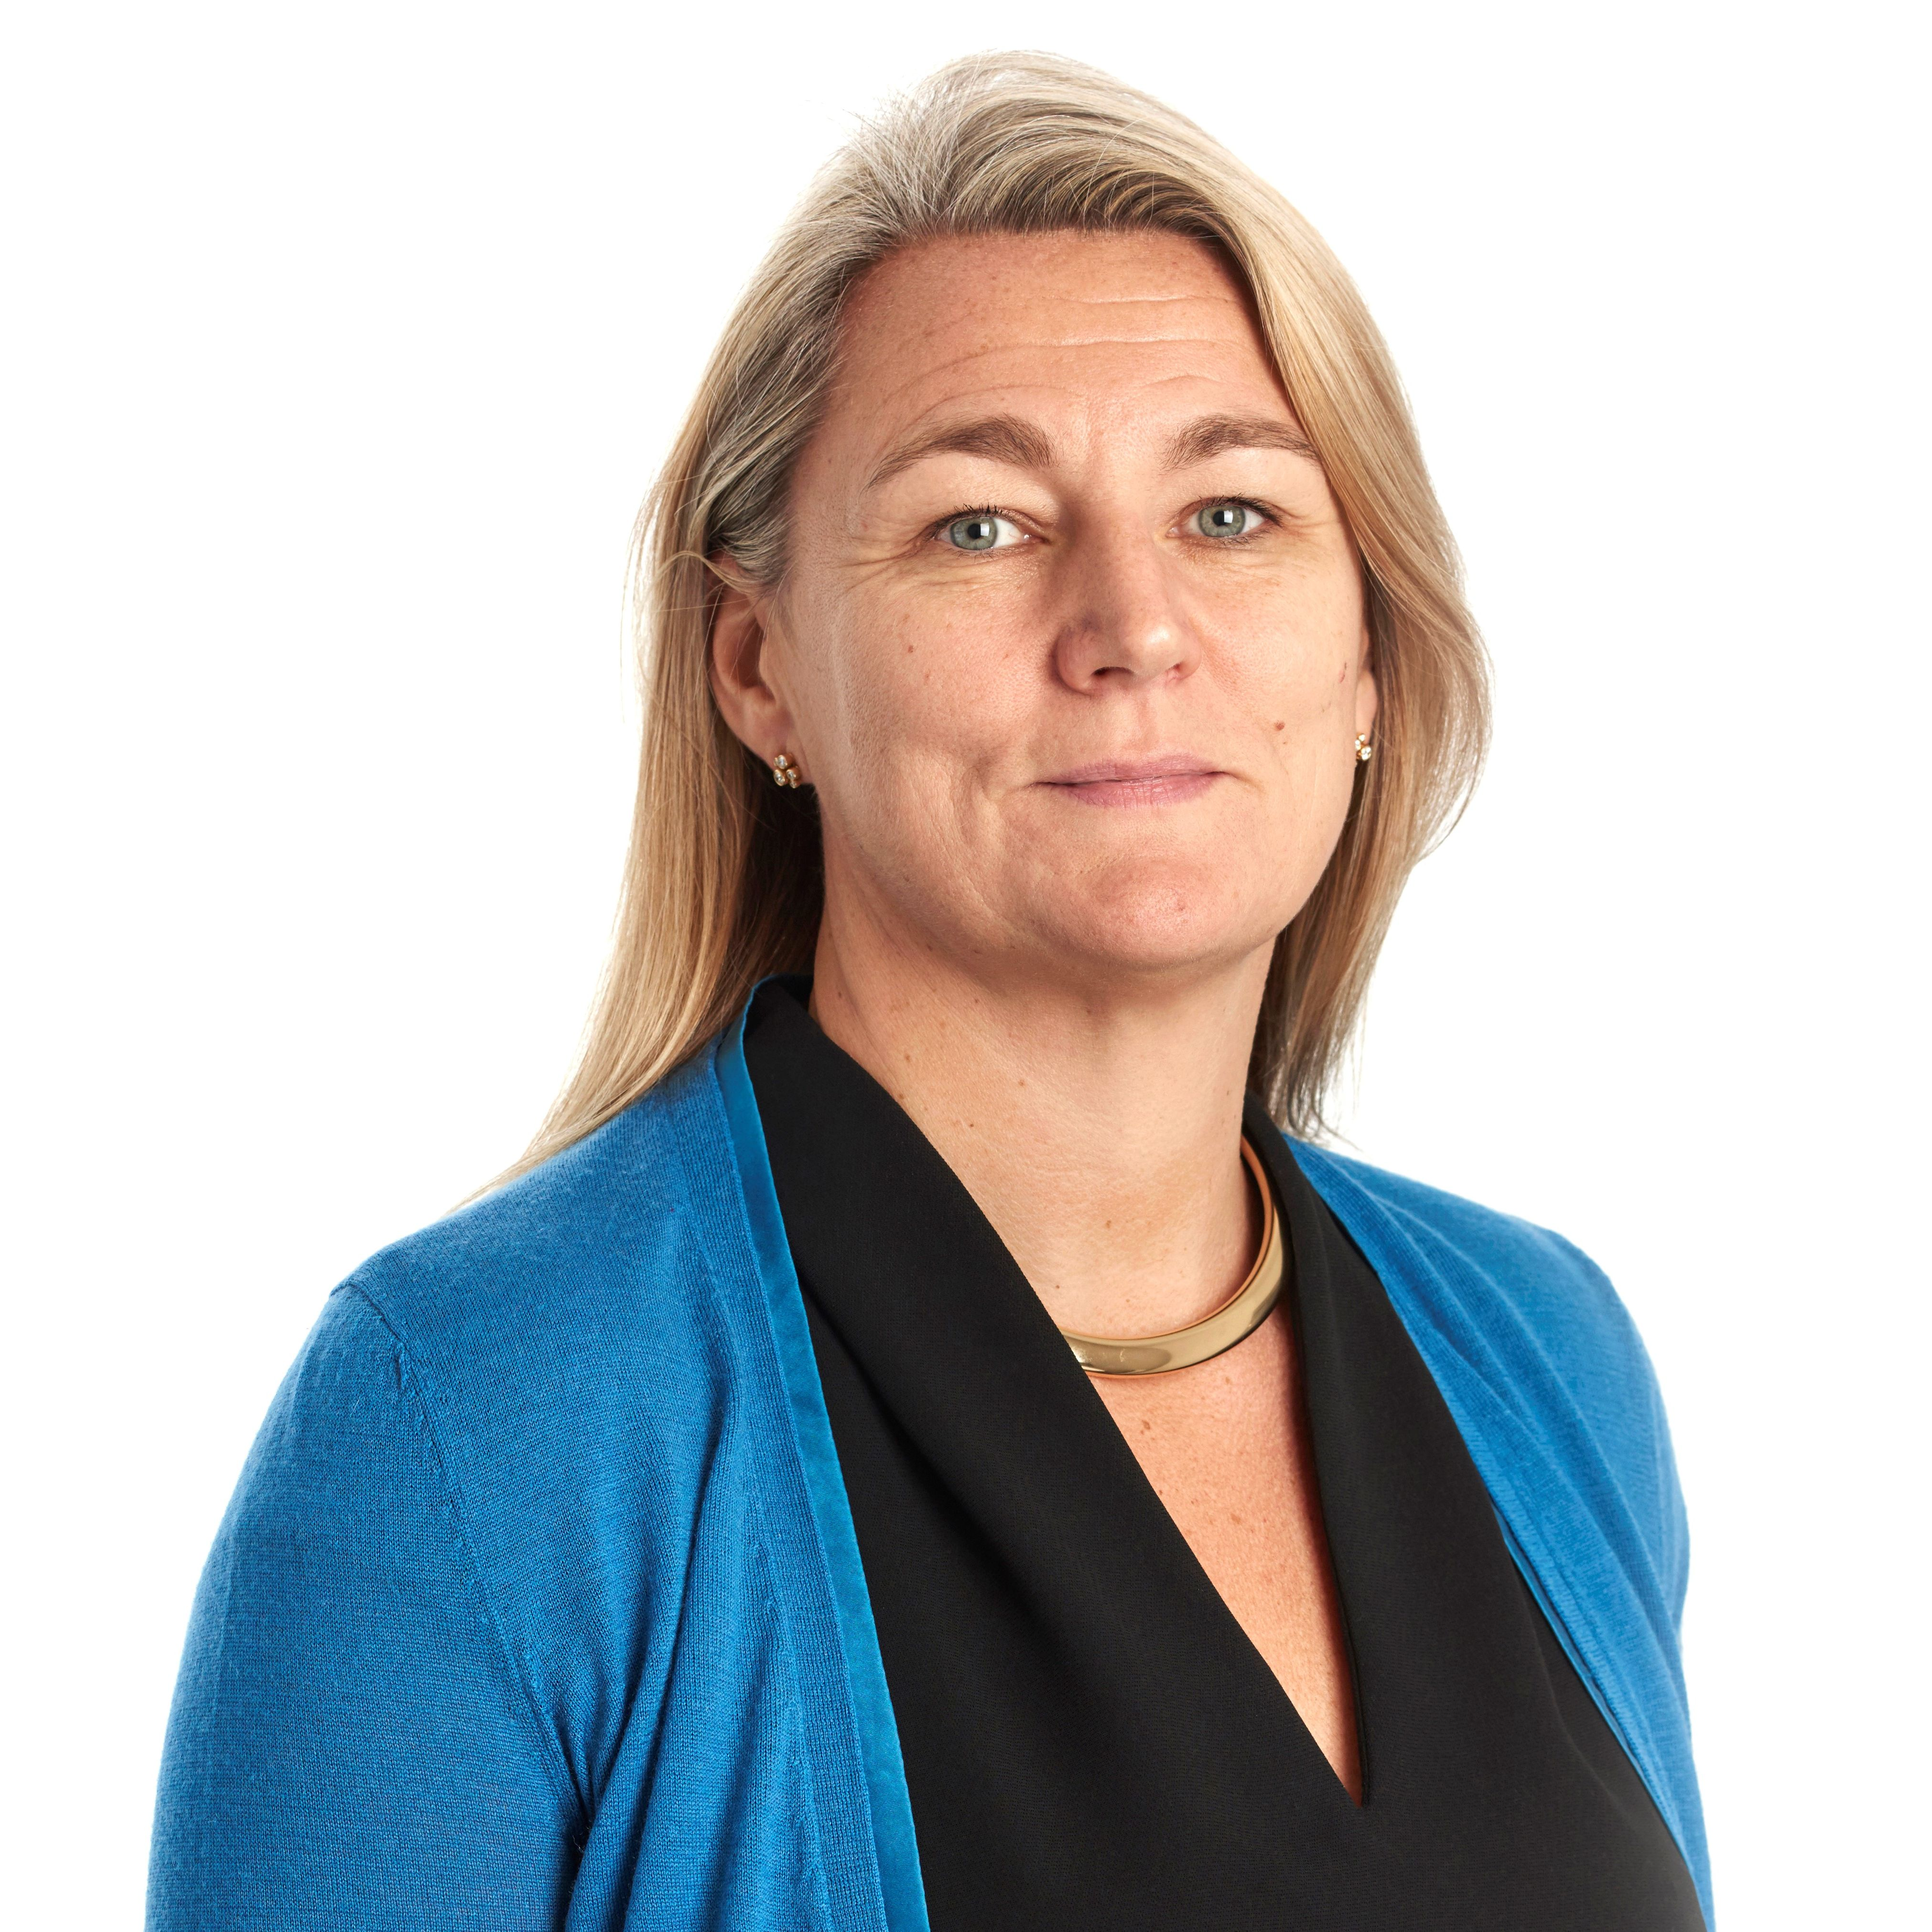 Profile photo of Zillah Byng-Thorne, Chief Executive Officer at Future